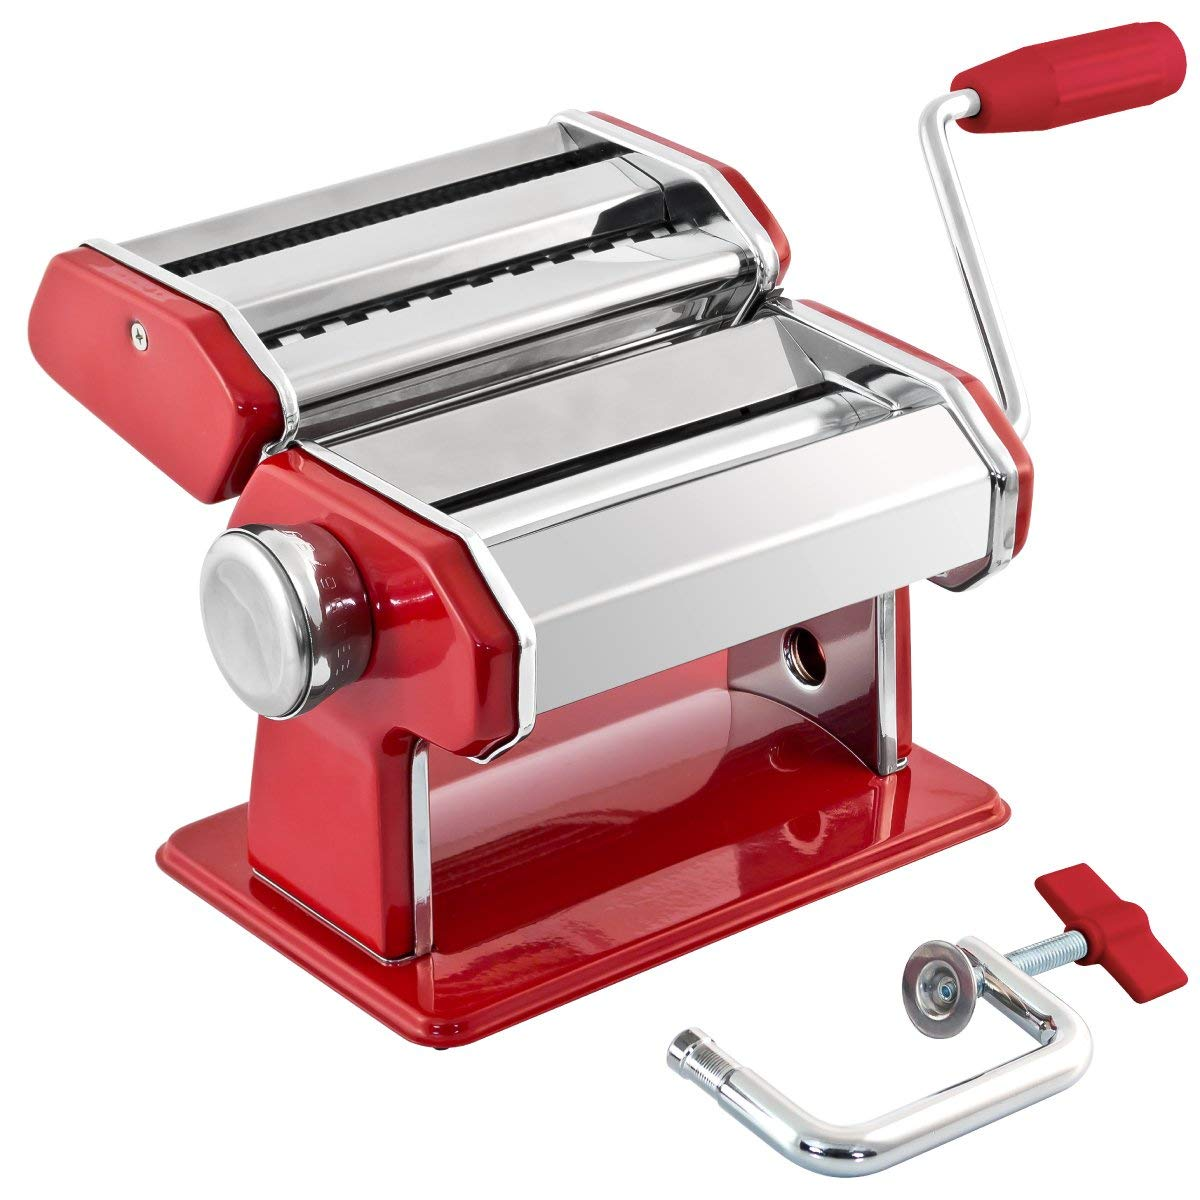 GOURMEX Stainless Steel Manual Pasta Maker Machine | With Adjustable Thickness Settings | Perfect for Professional Homemade Spaghetti and Fettuccini | Includes Removable Handle and Clamp (Red) by Gourmex